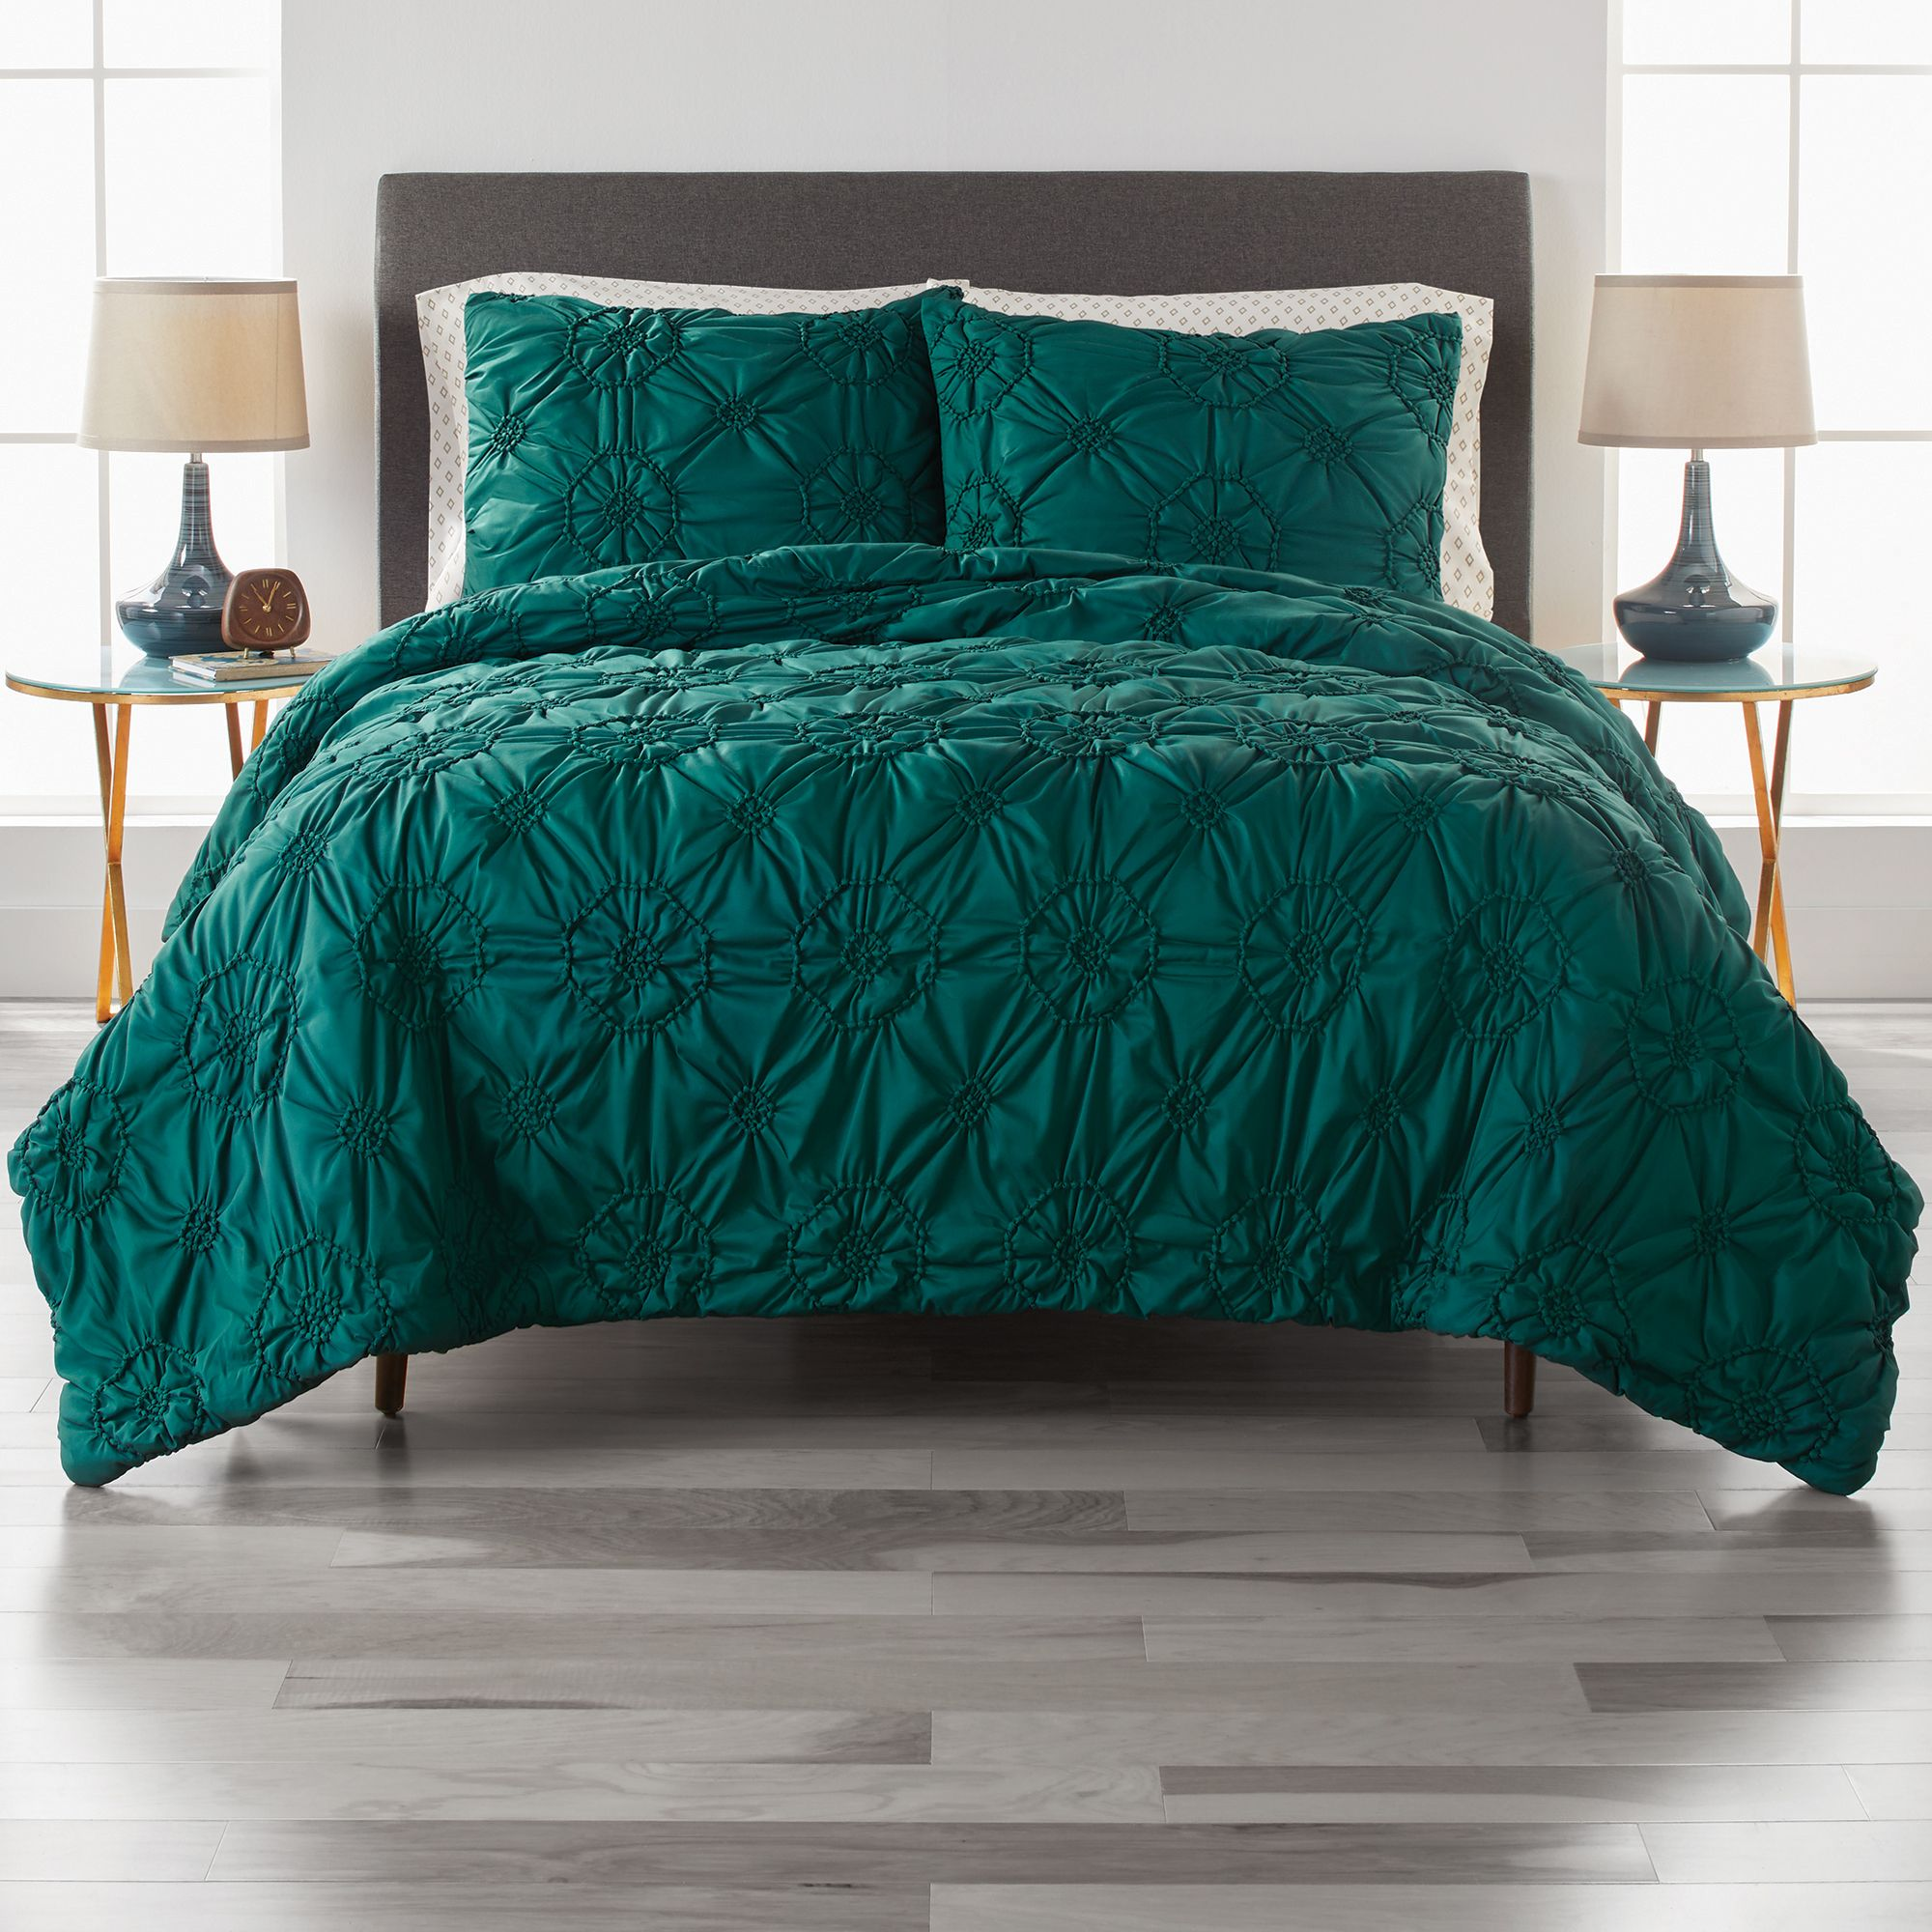 Free 2 Day Shipping Buy Better Homes And Gardens Elastic Pintuck 3 Piece Dark Green Comforter Set In 2020 Green Comforter Sets Green Comforter Bedroom Green Comforter